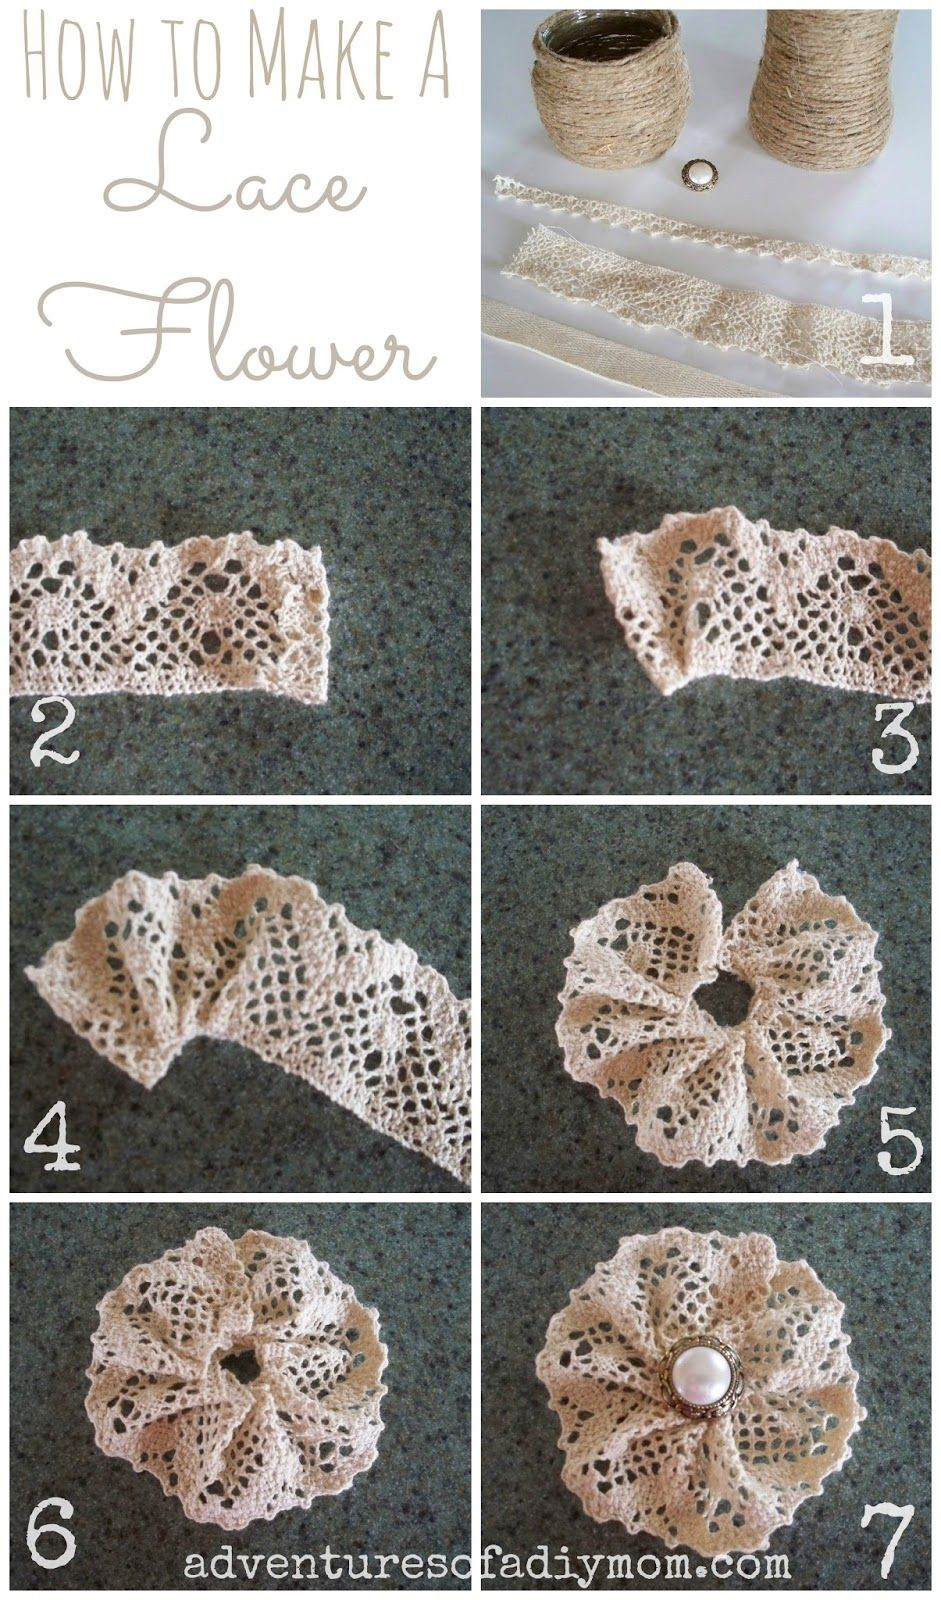 Adventures Of A Diy Mom  How To Make A Lace Flower